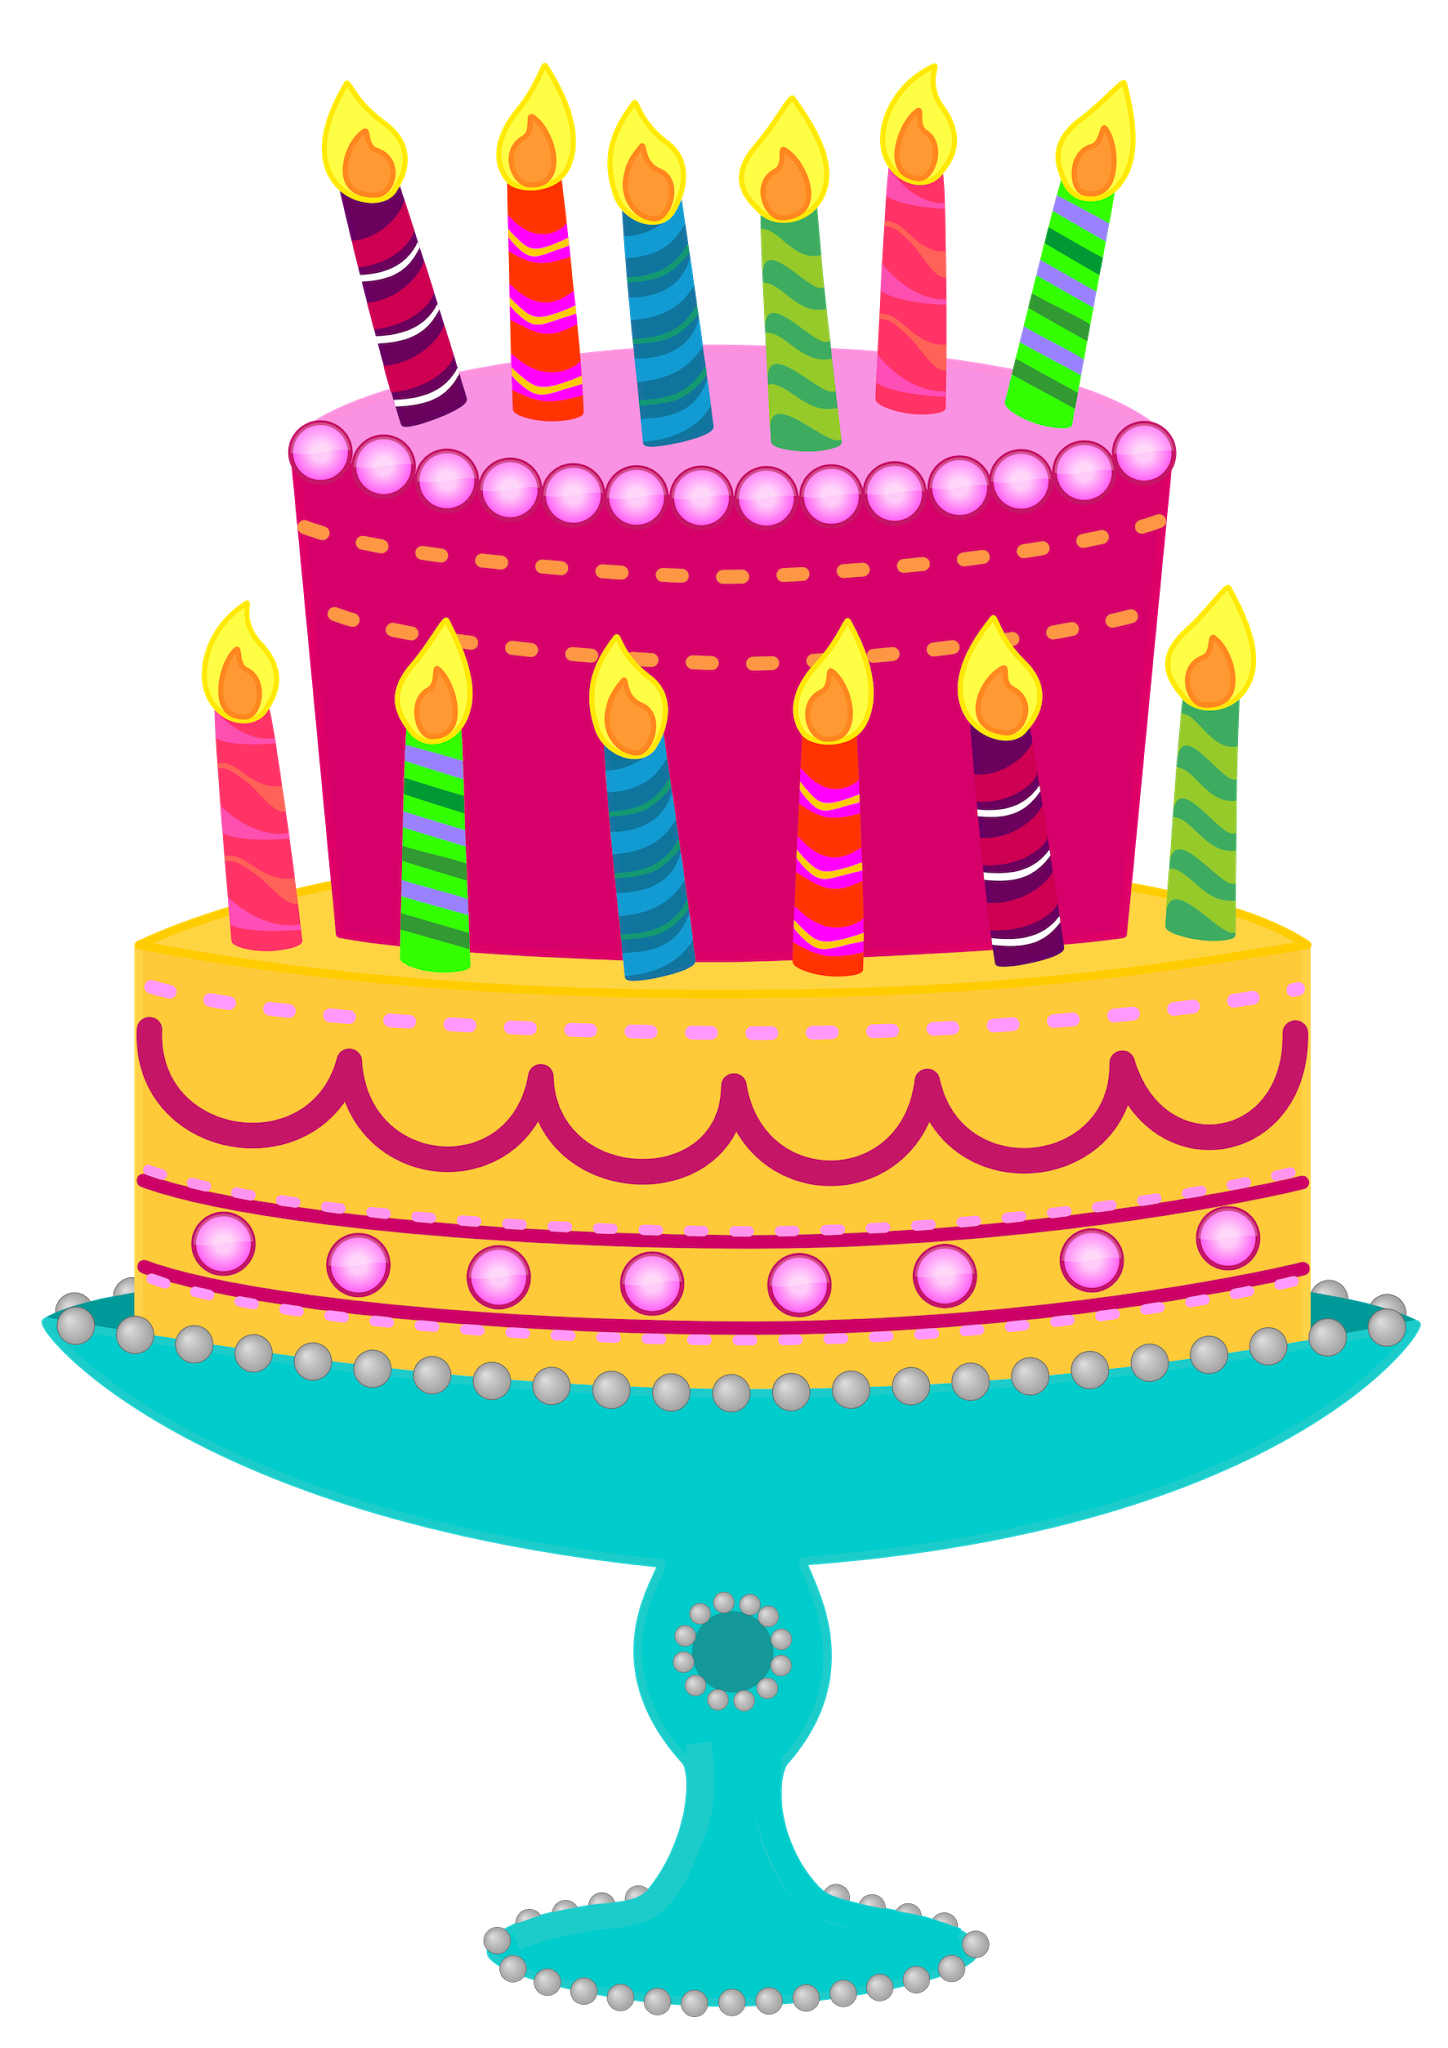 Champagne clipart birthday cake Paper Cliparts Cake Cliparts Images